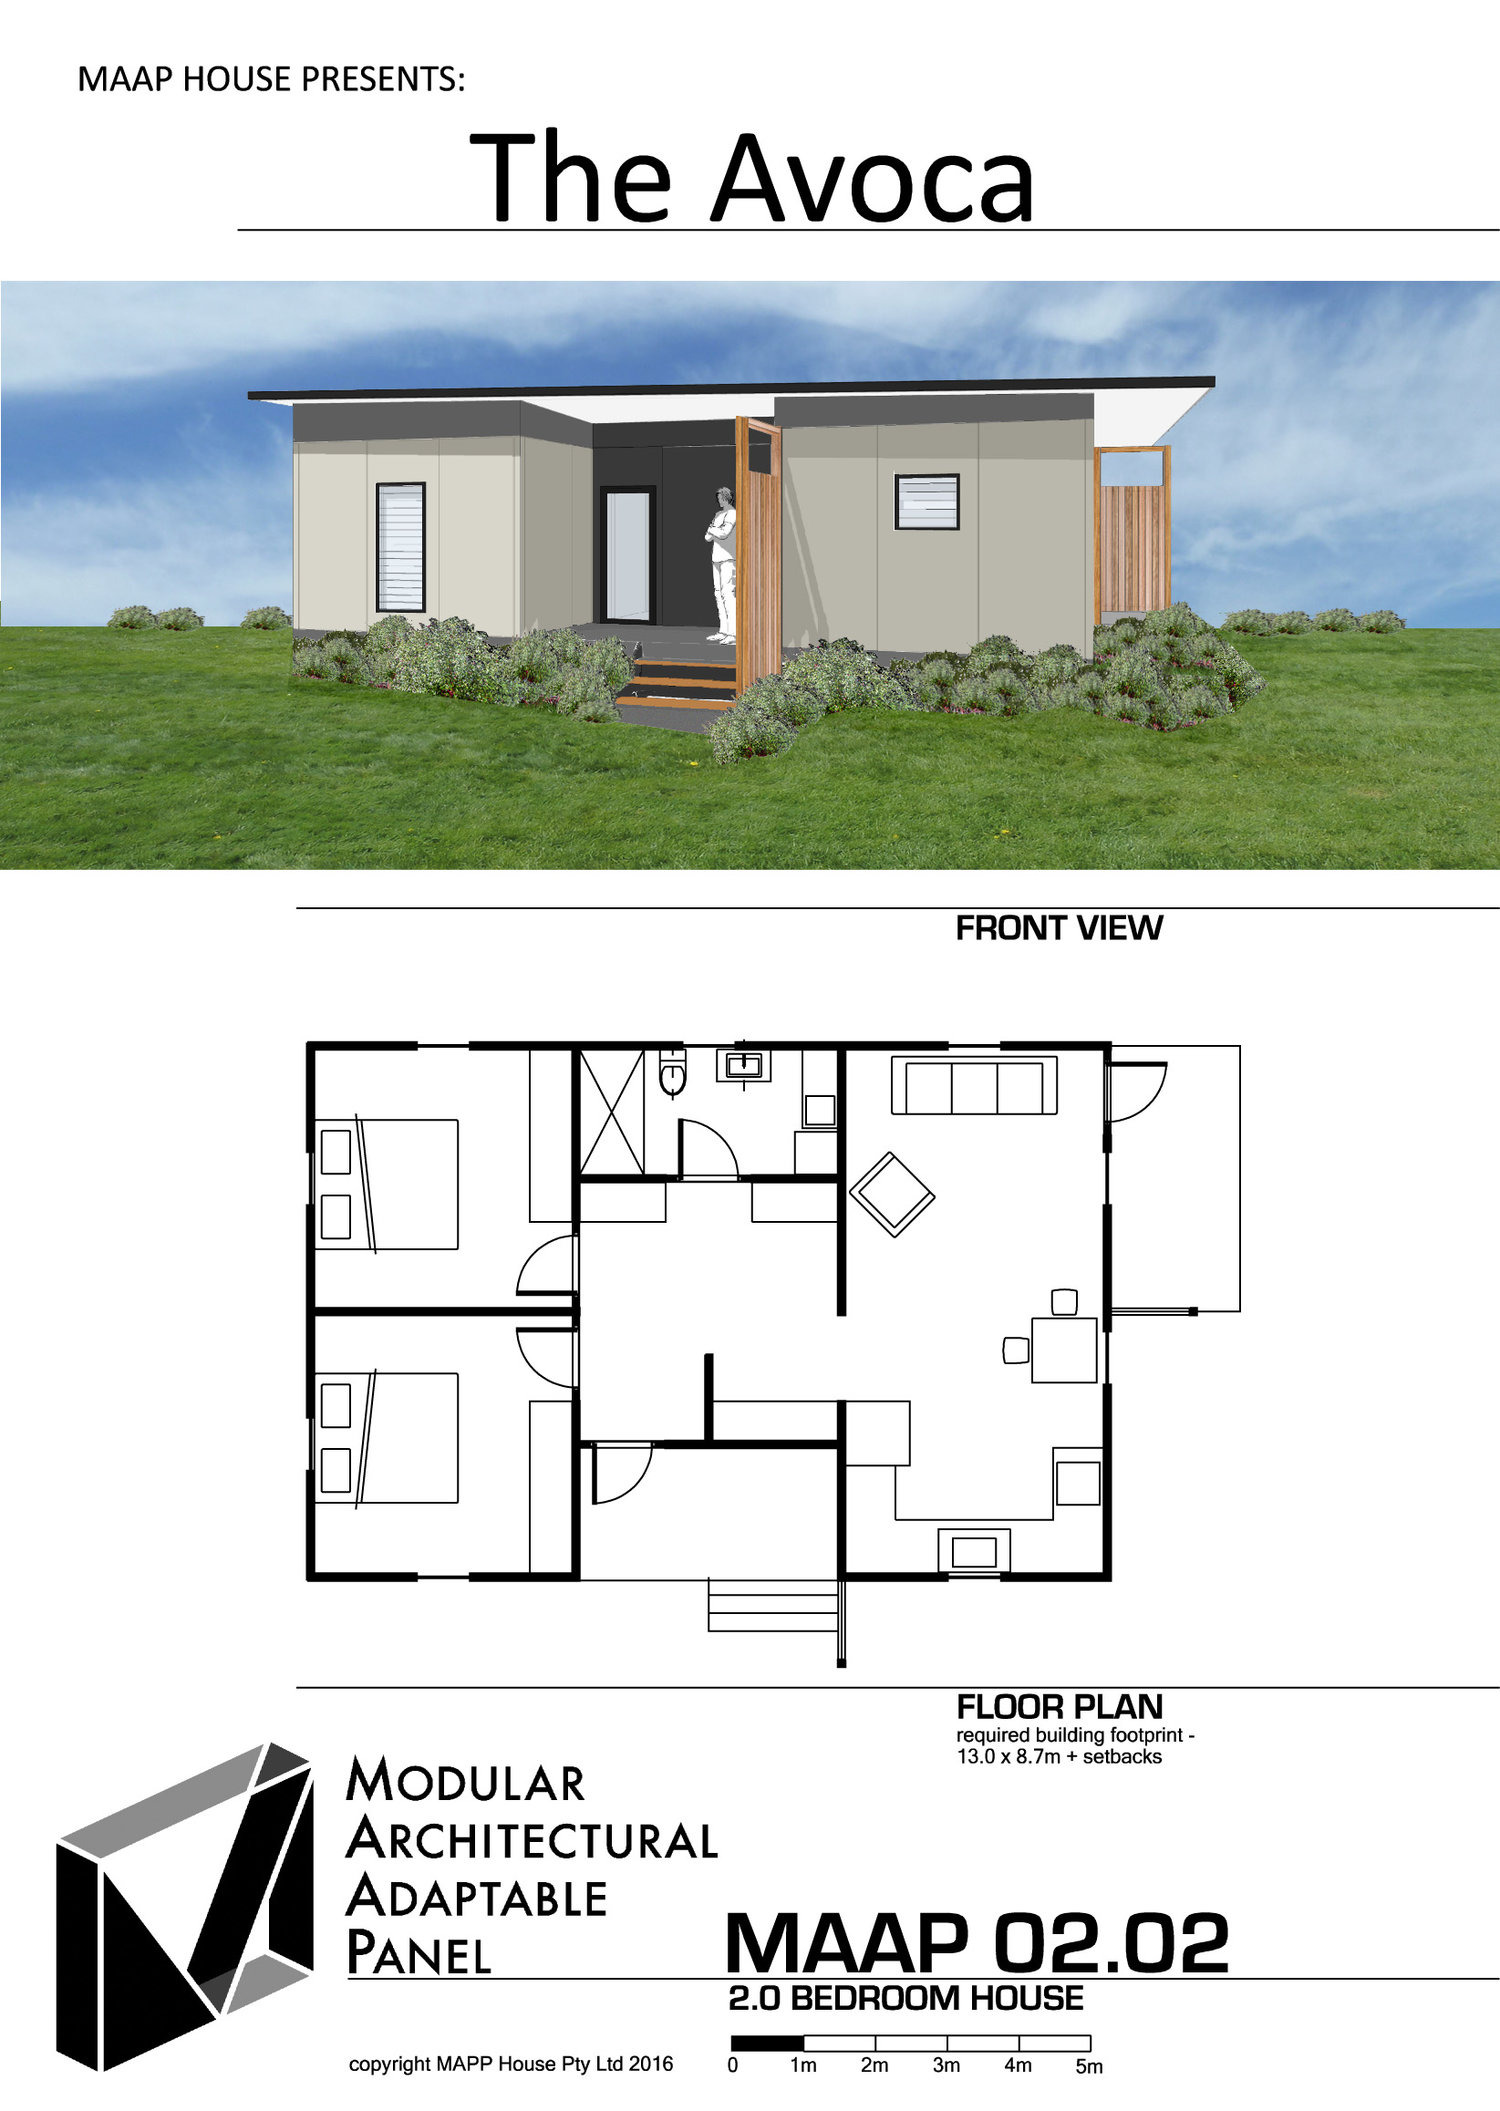 Cost Of Building A 3 Bedroom House Luxury Modular House Designs Plans and Prices — Maap House